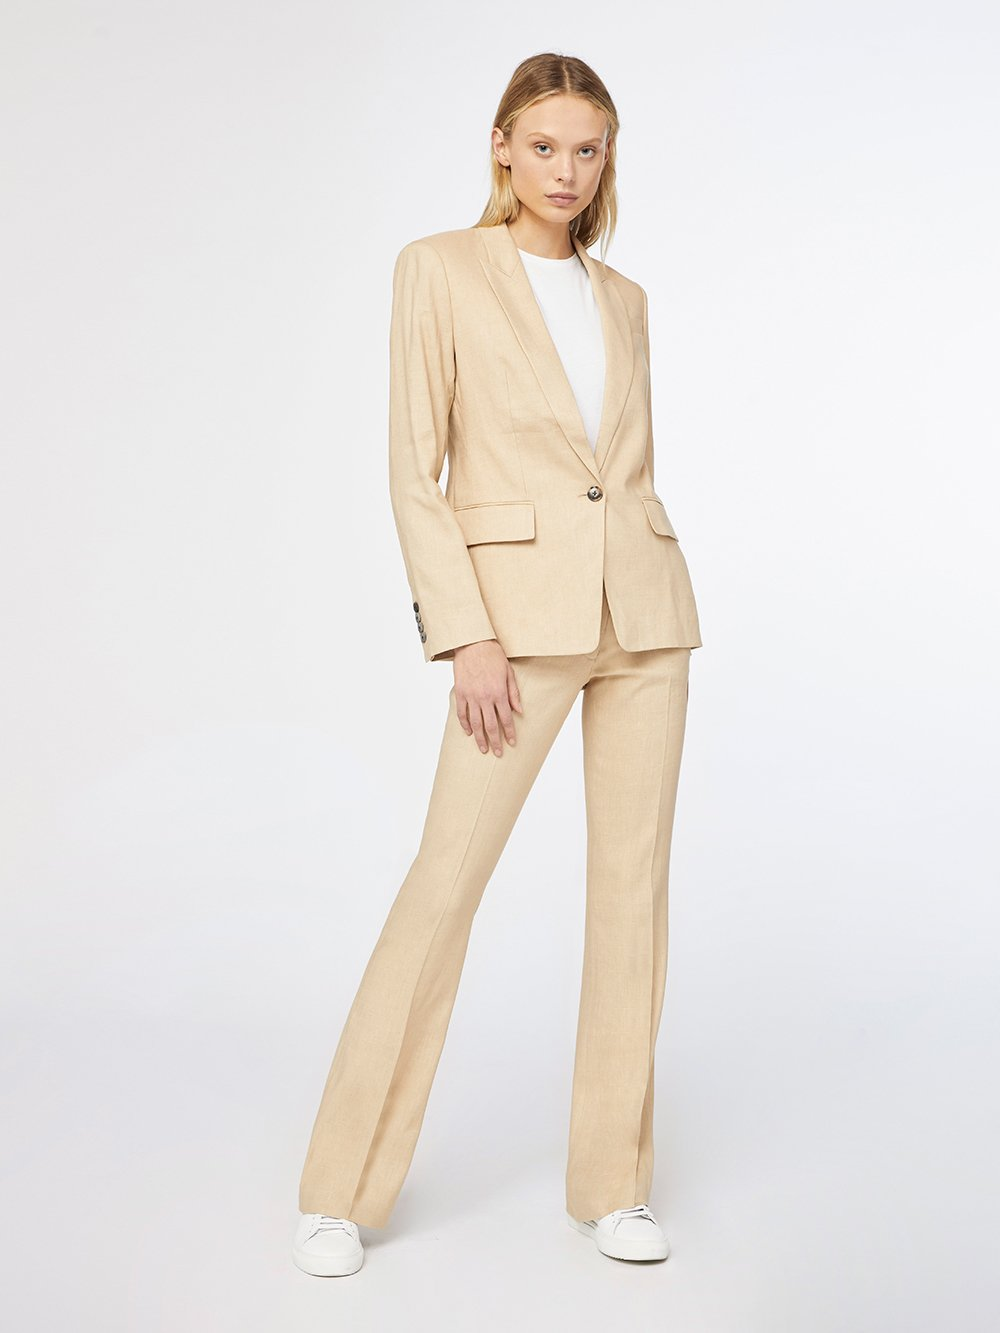 blazer front full body view